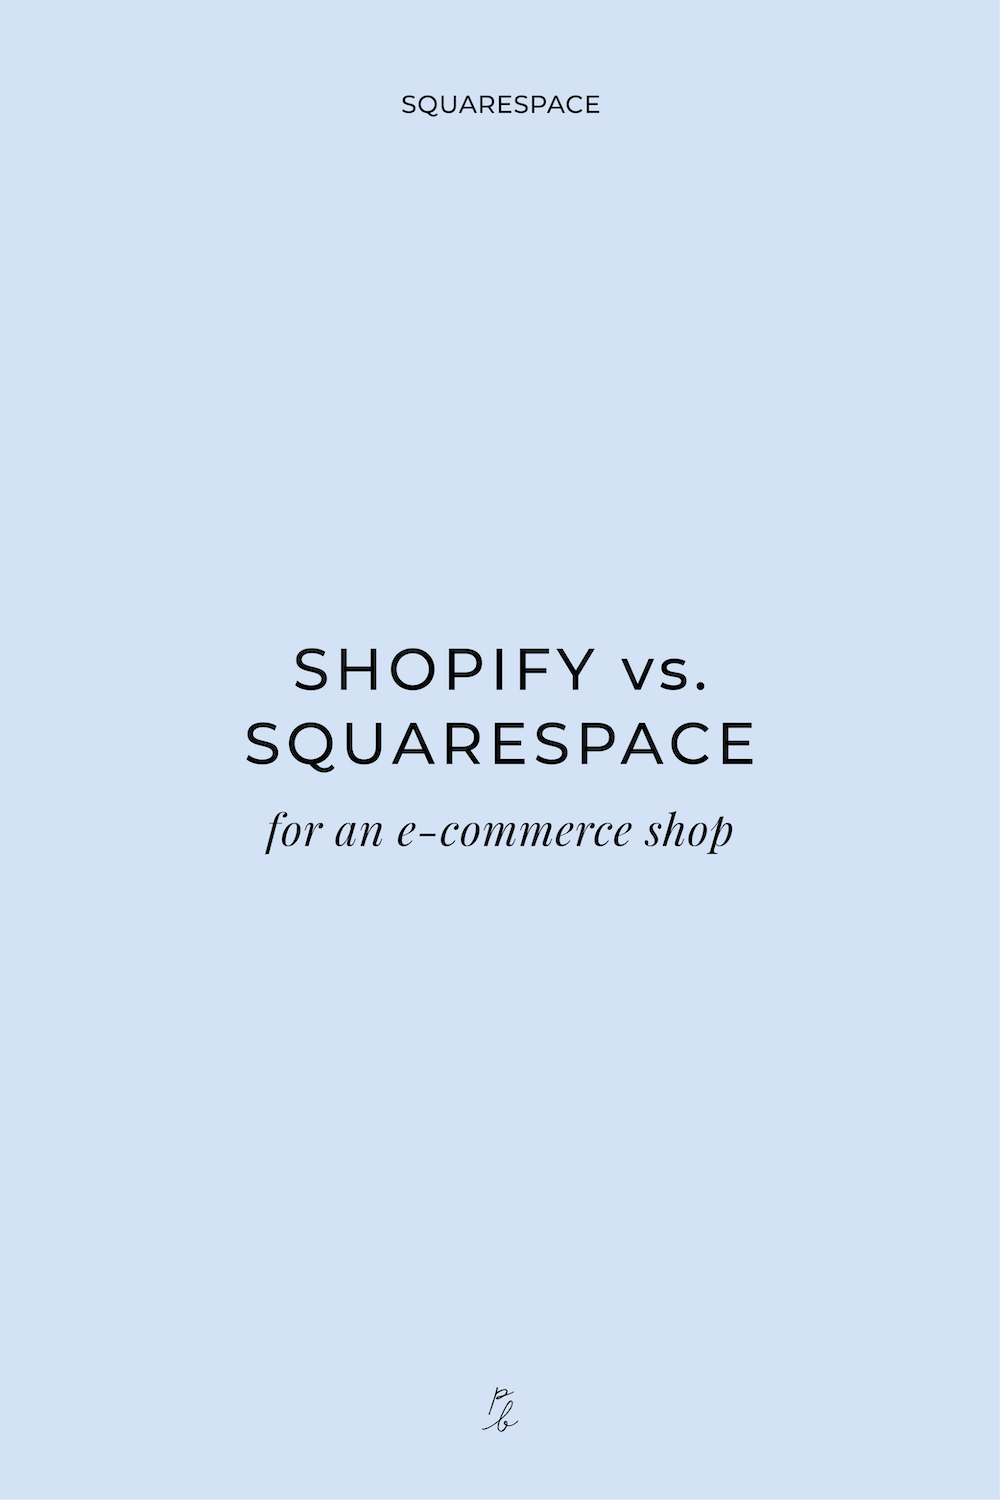 2-Shopify vs. Squarespace for an e-commerce shop.jpg